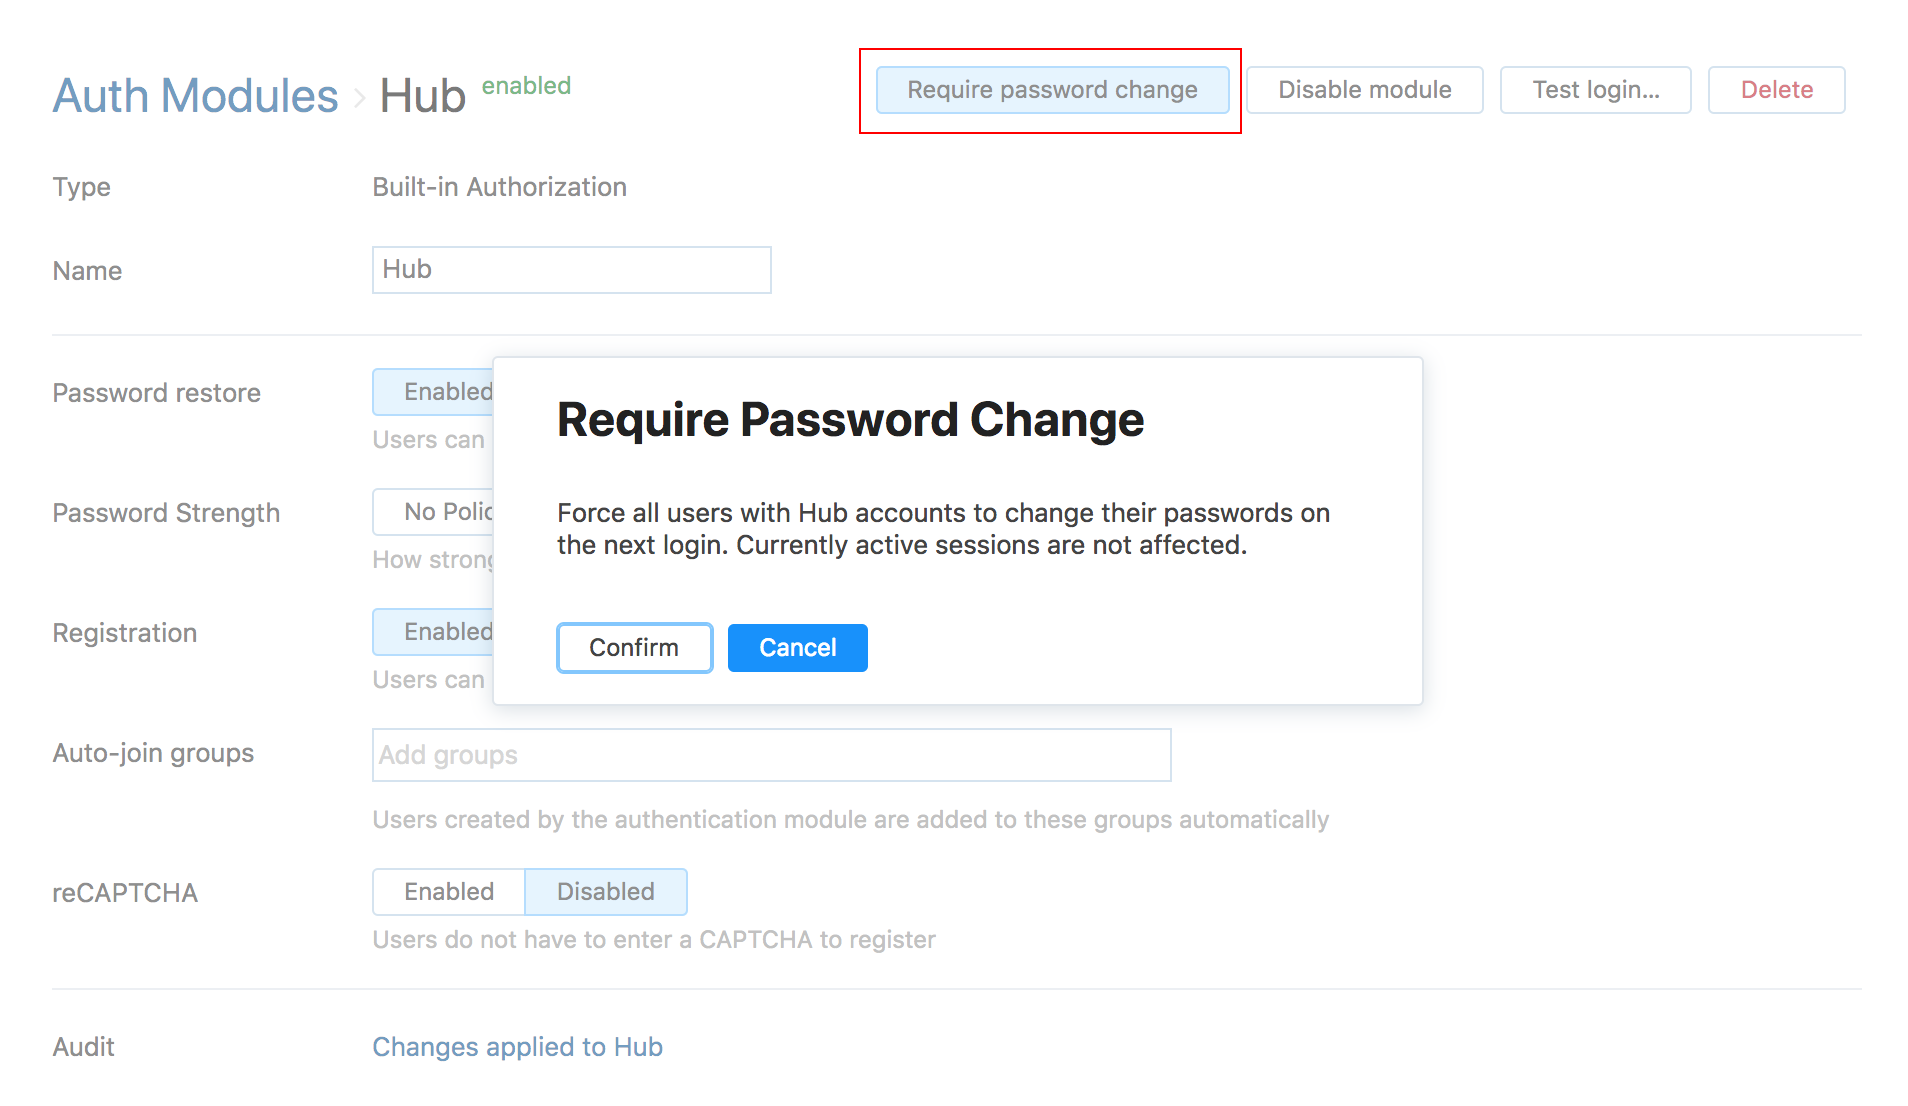 require_password_change